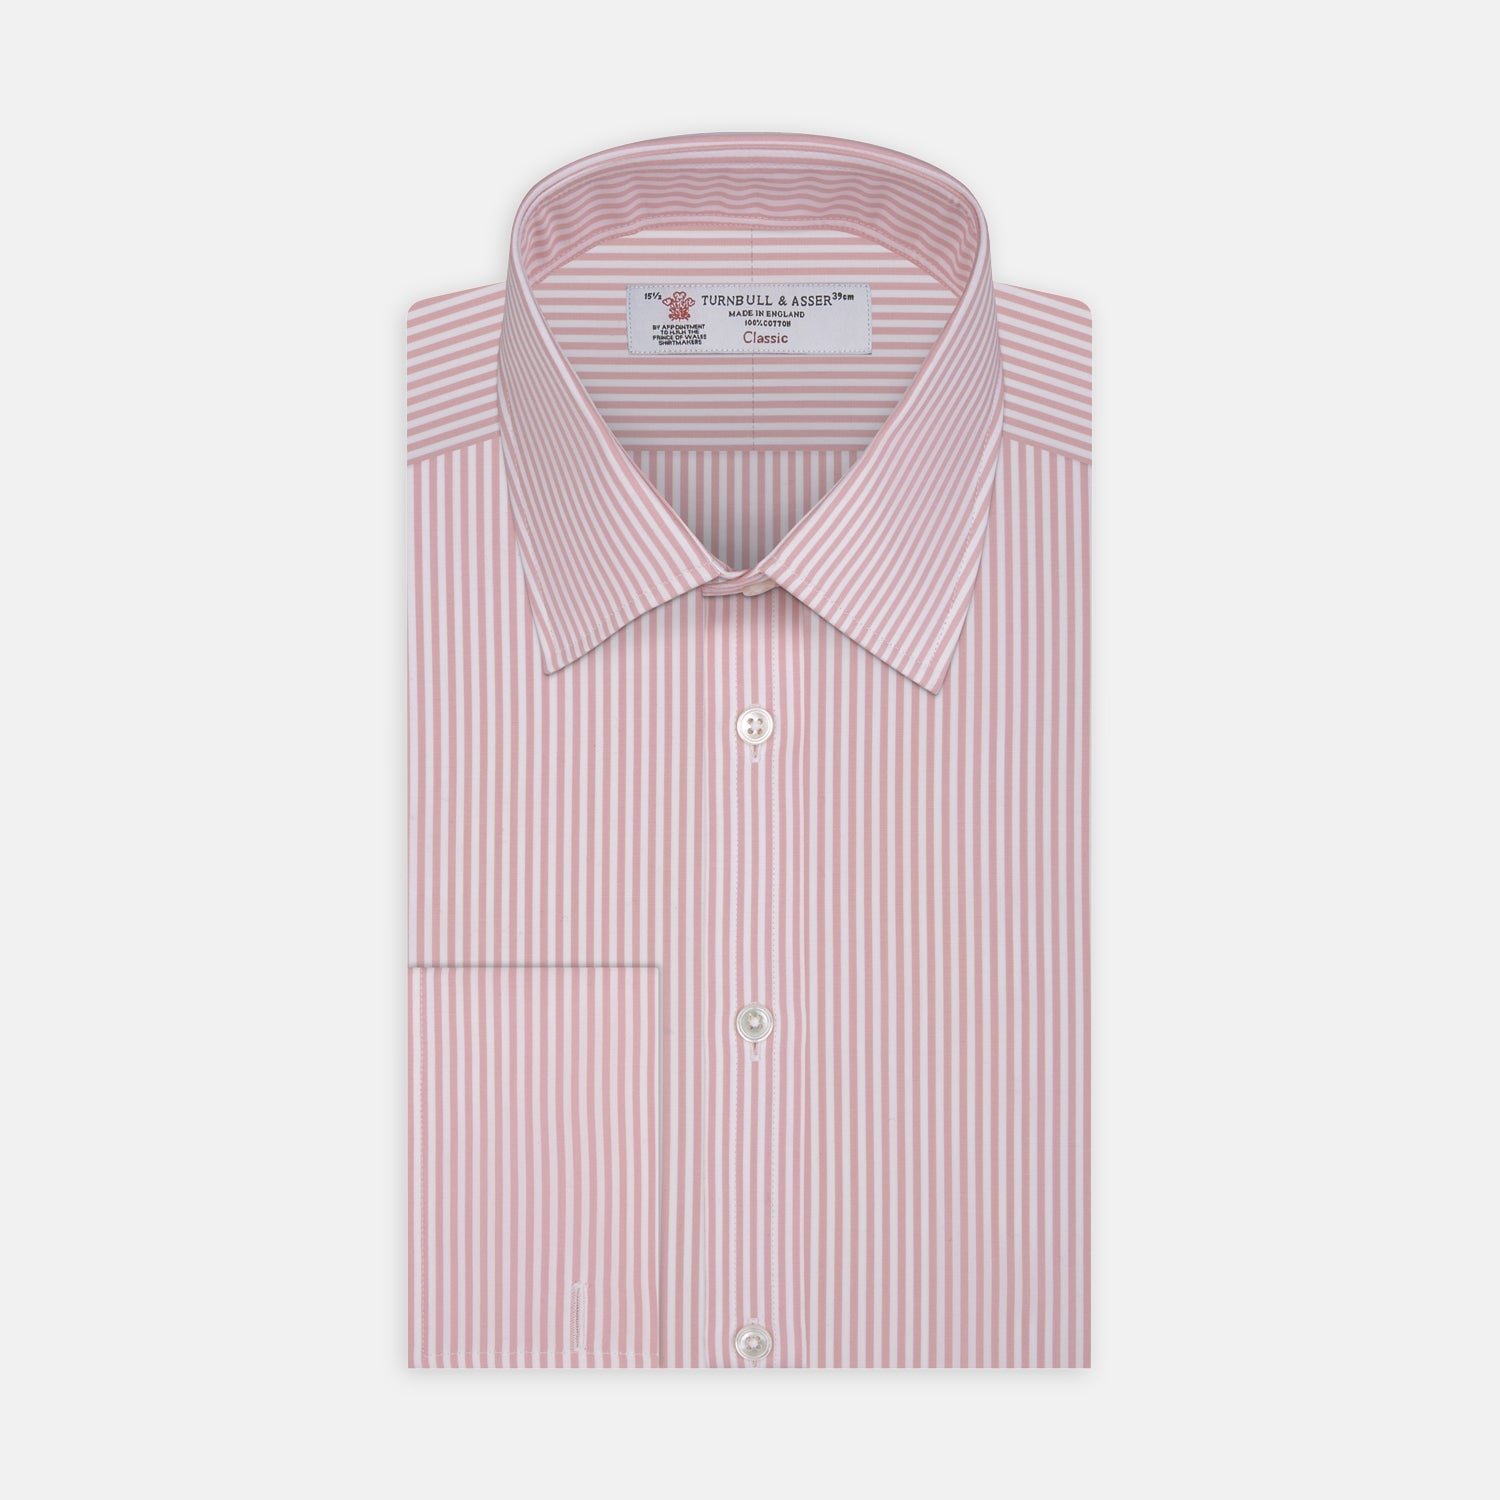 Pink Bengal Stripe Shirt with T&A Collar and Double Cuffs - 15.75 from Turnbull & Asser